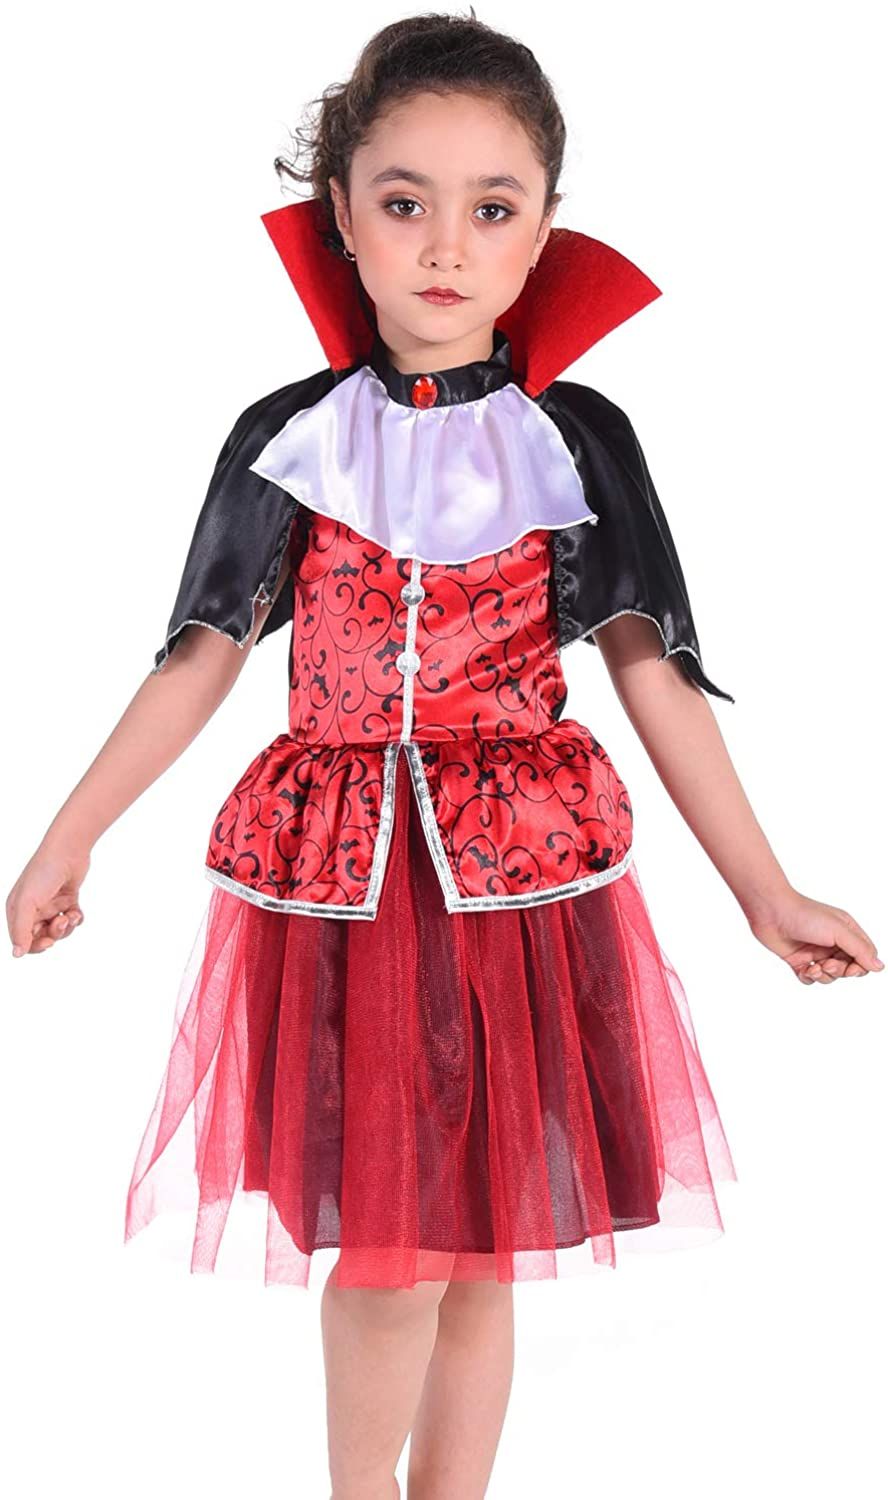 Vampire Costume Role Play Set Kids for Halloween Costume Size 3-8 Years